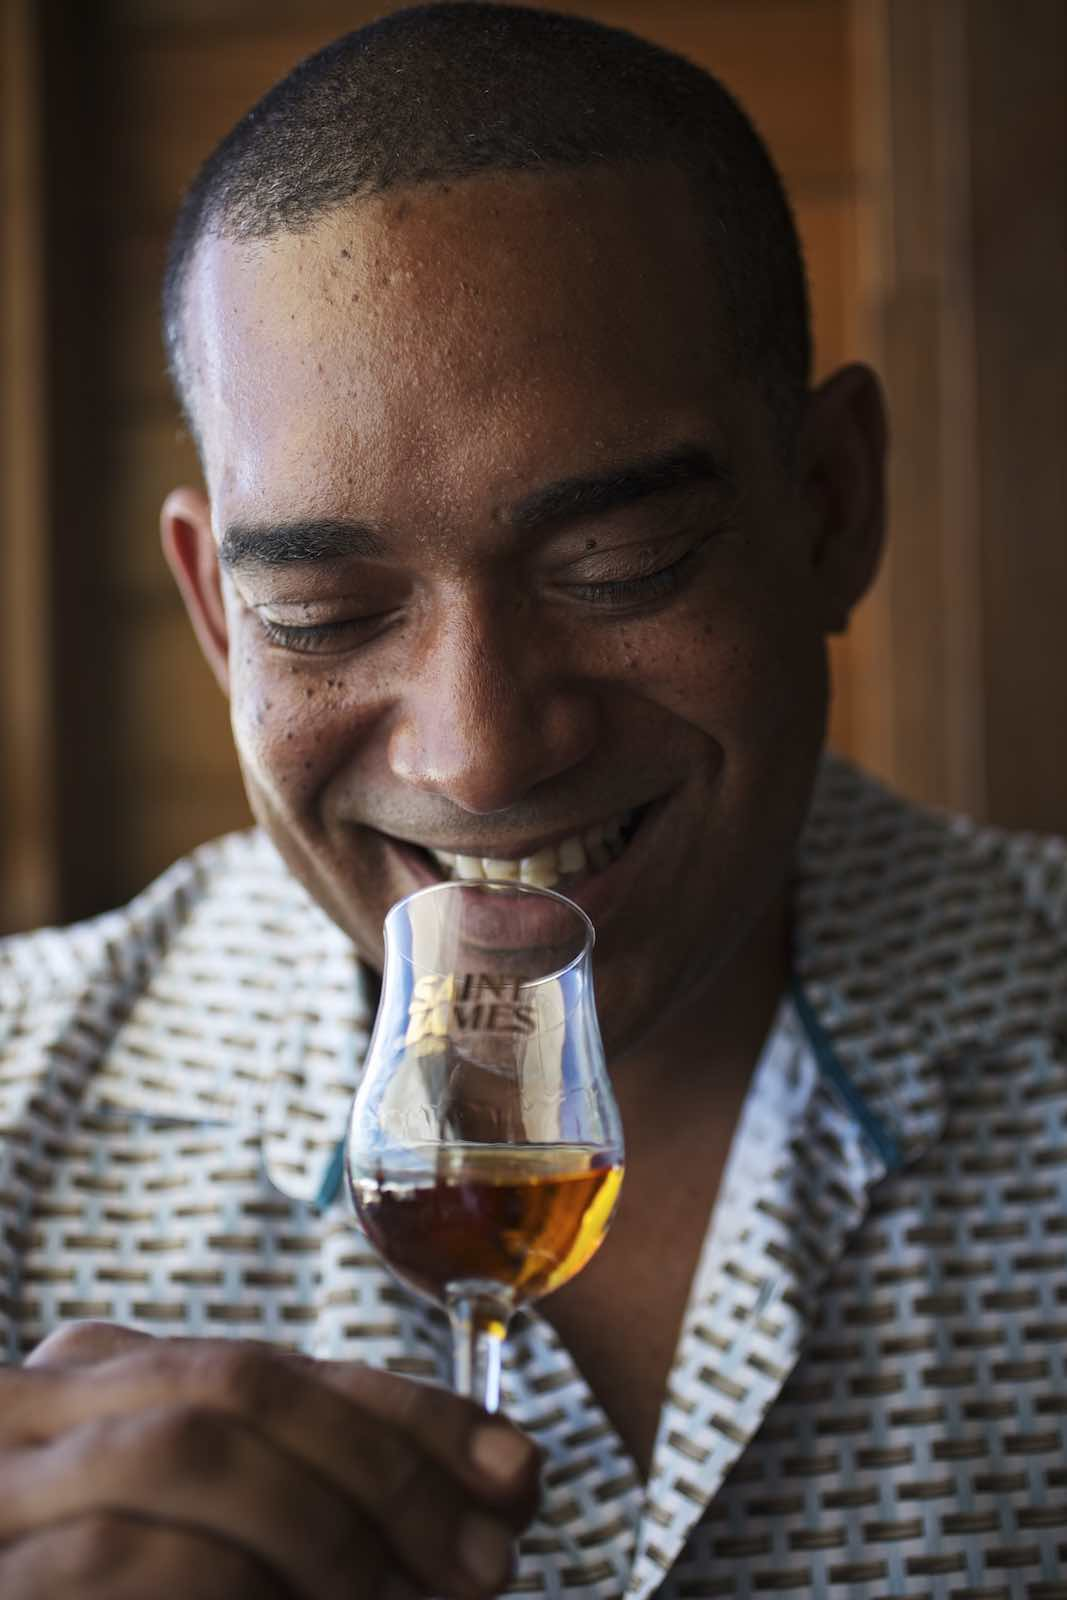 Jody Horton Photography - Man in a patterned shirt smiling while holding a glass of rum.